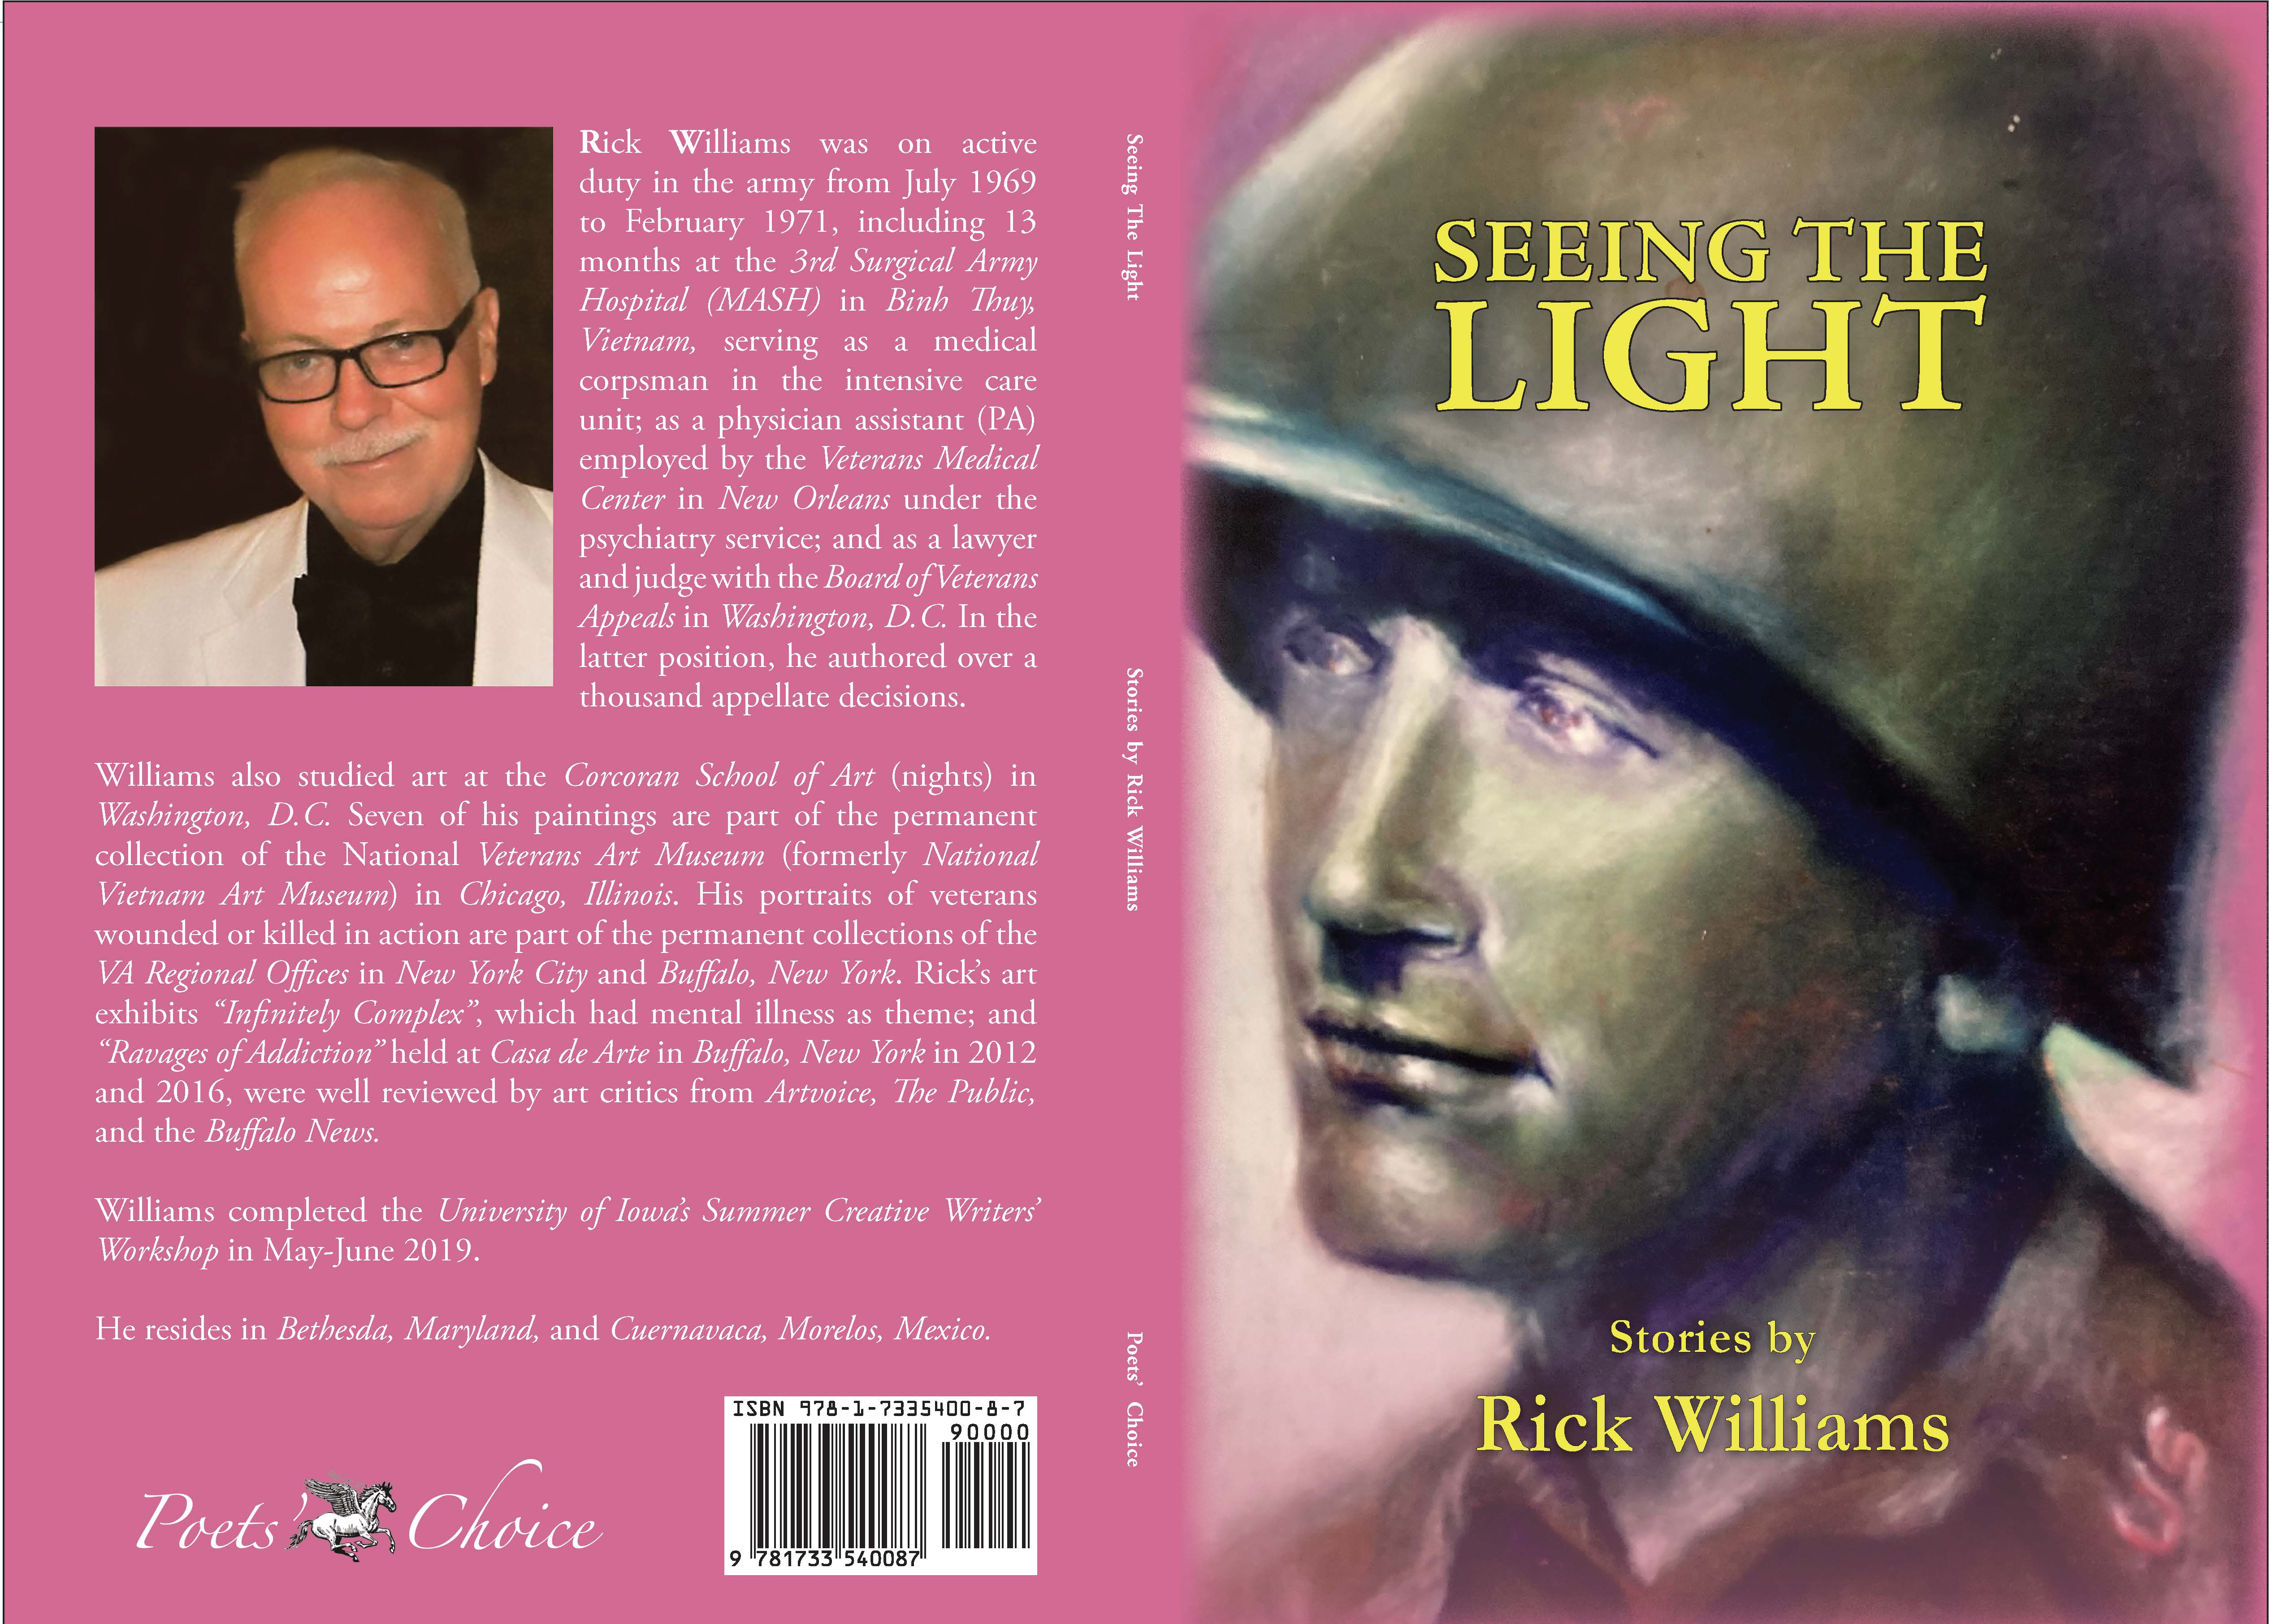 Poet's Choice Publishing is Proud to Announce the Publication of SEEING THE LIGHT, Short Stories and Artwork by Rick Williams